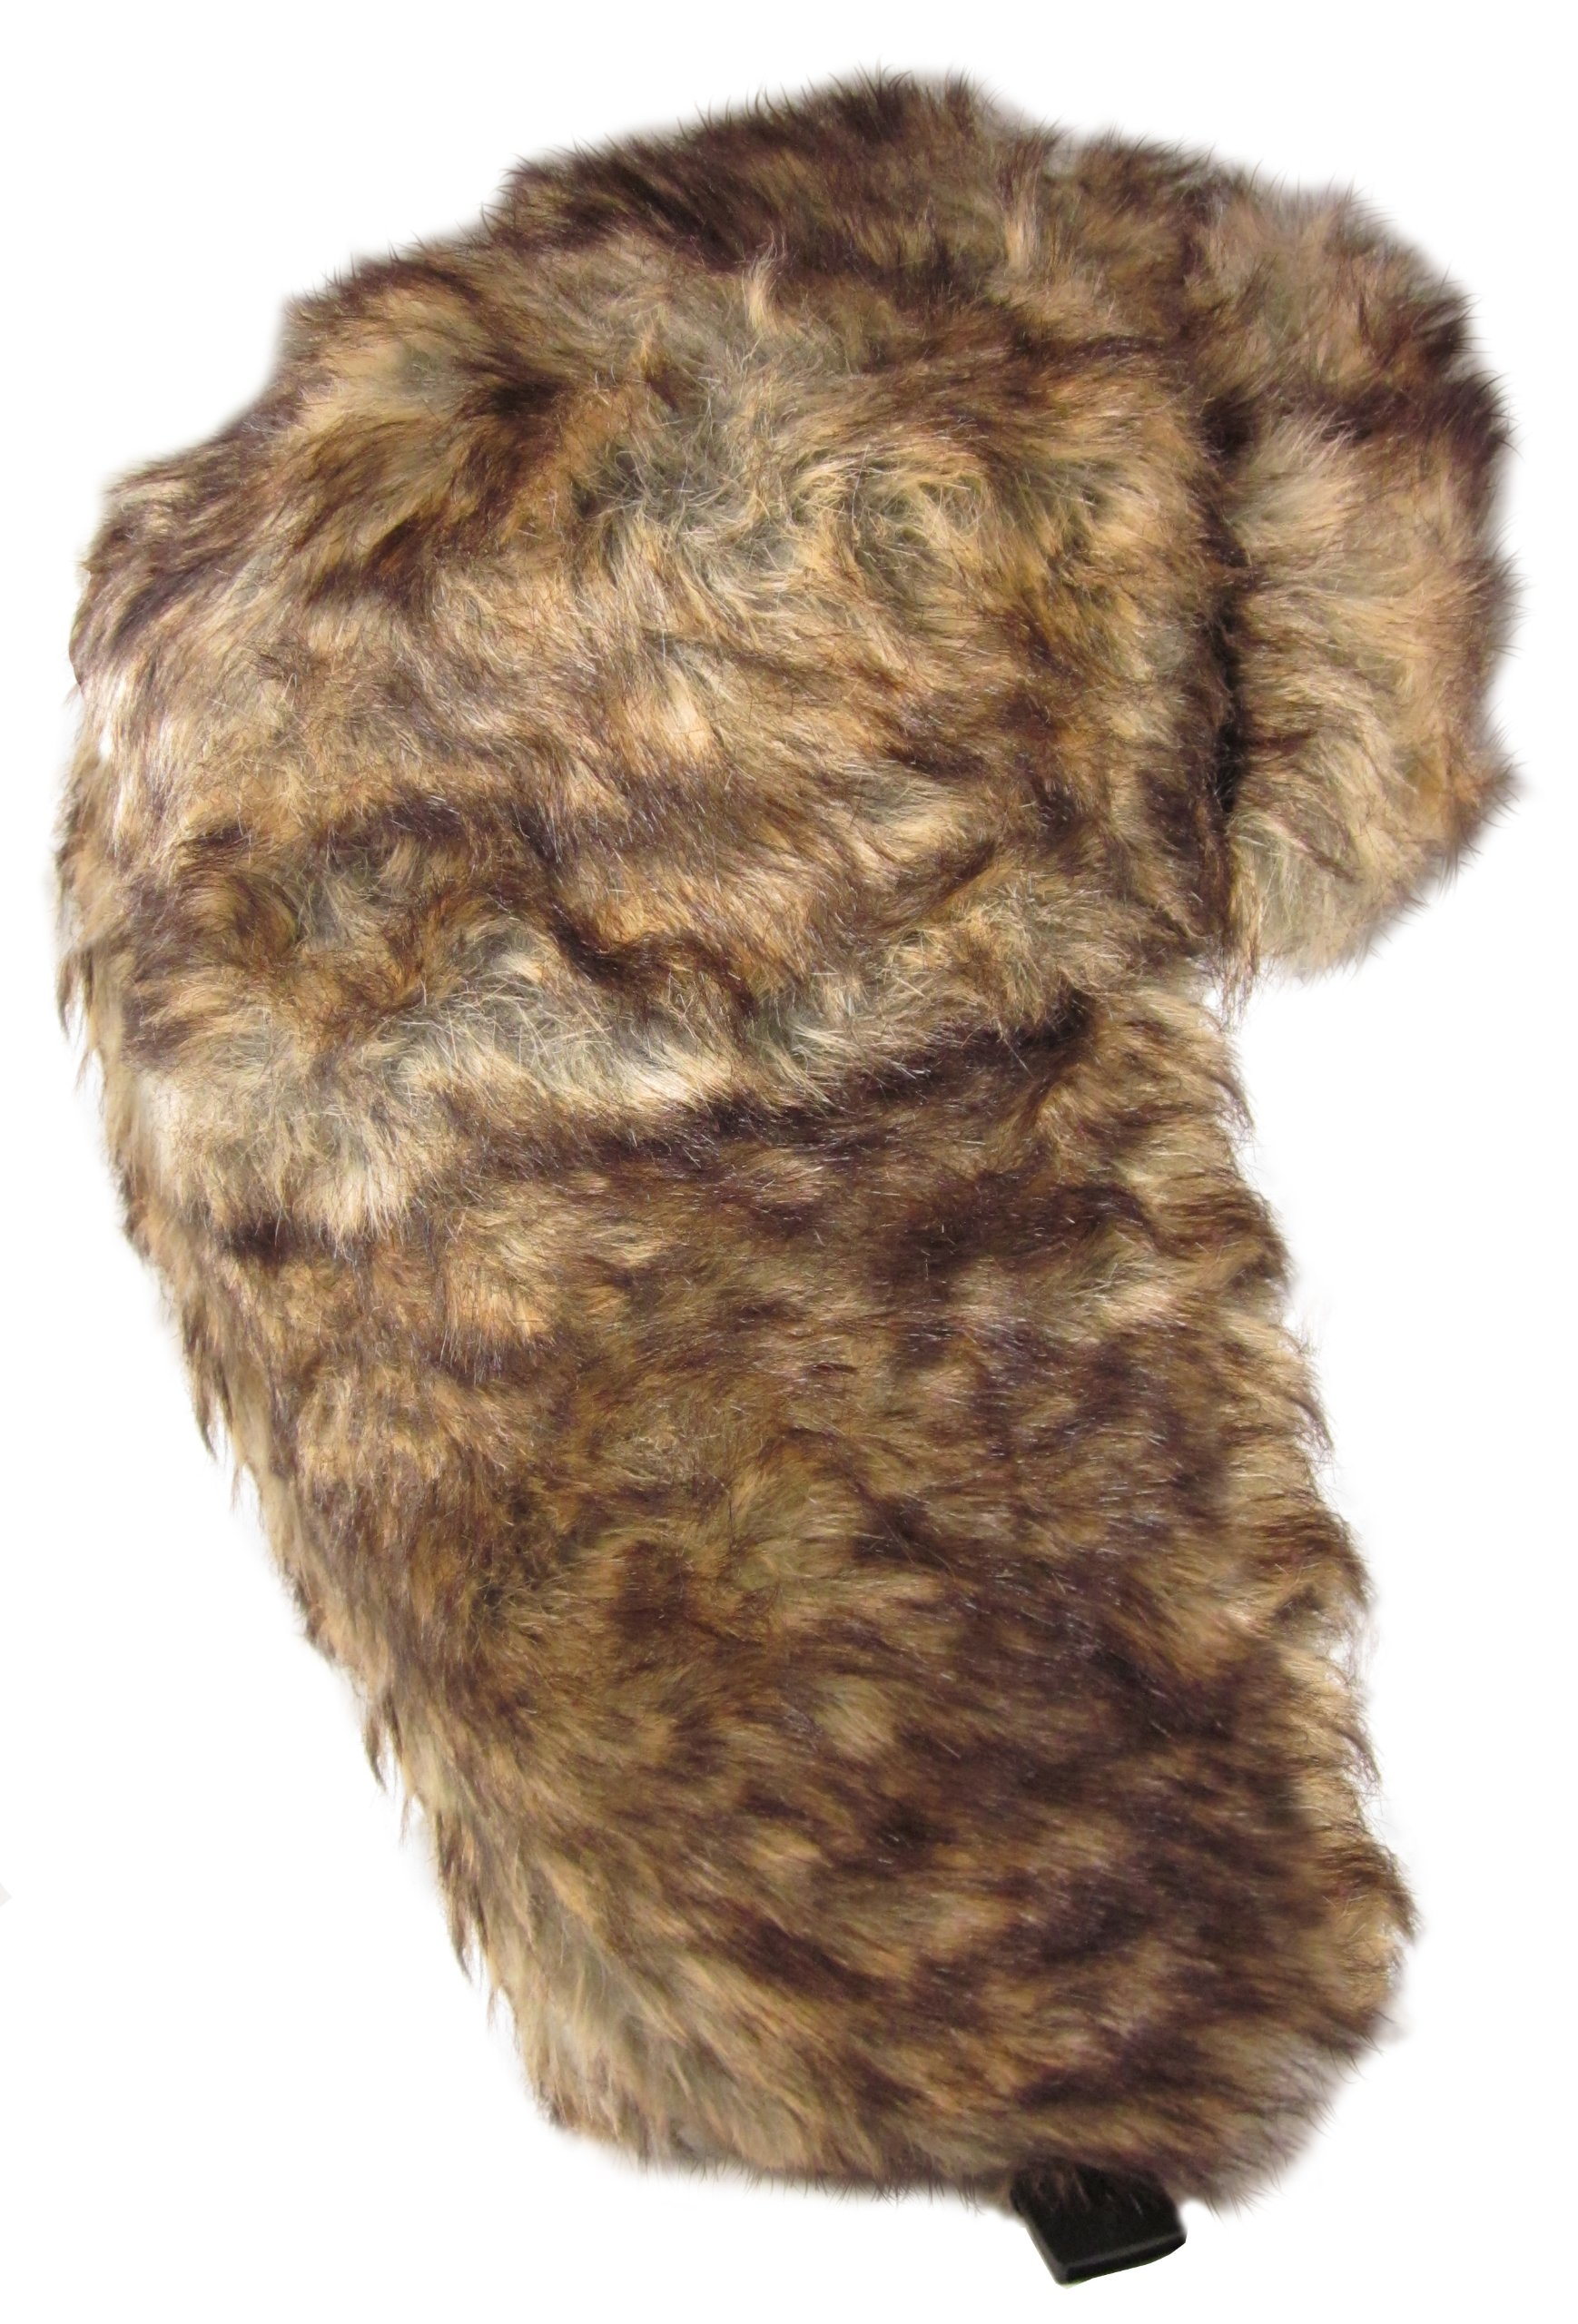 Dakota Dan Trooper Ear Flap Cap w/ Faux Fur Lining Hat